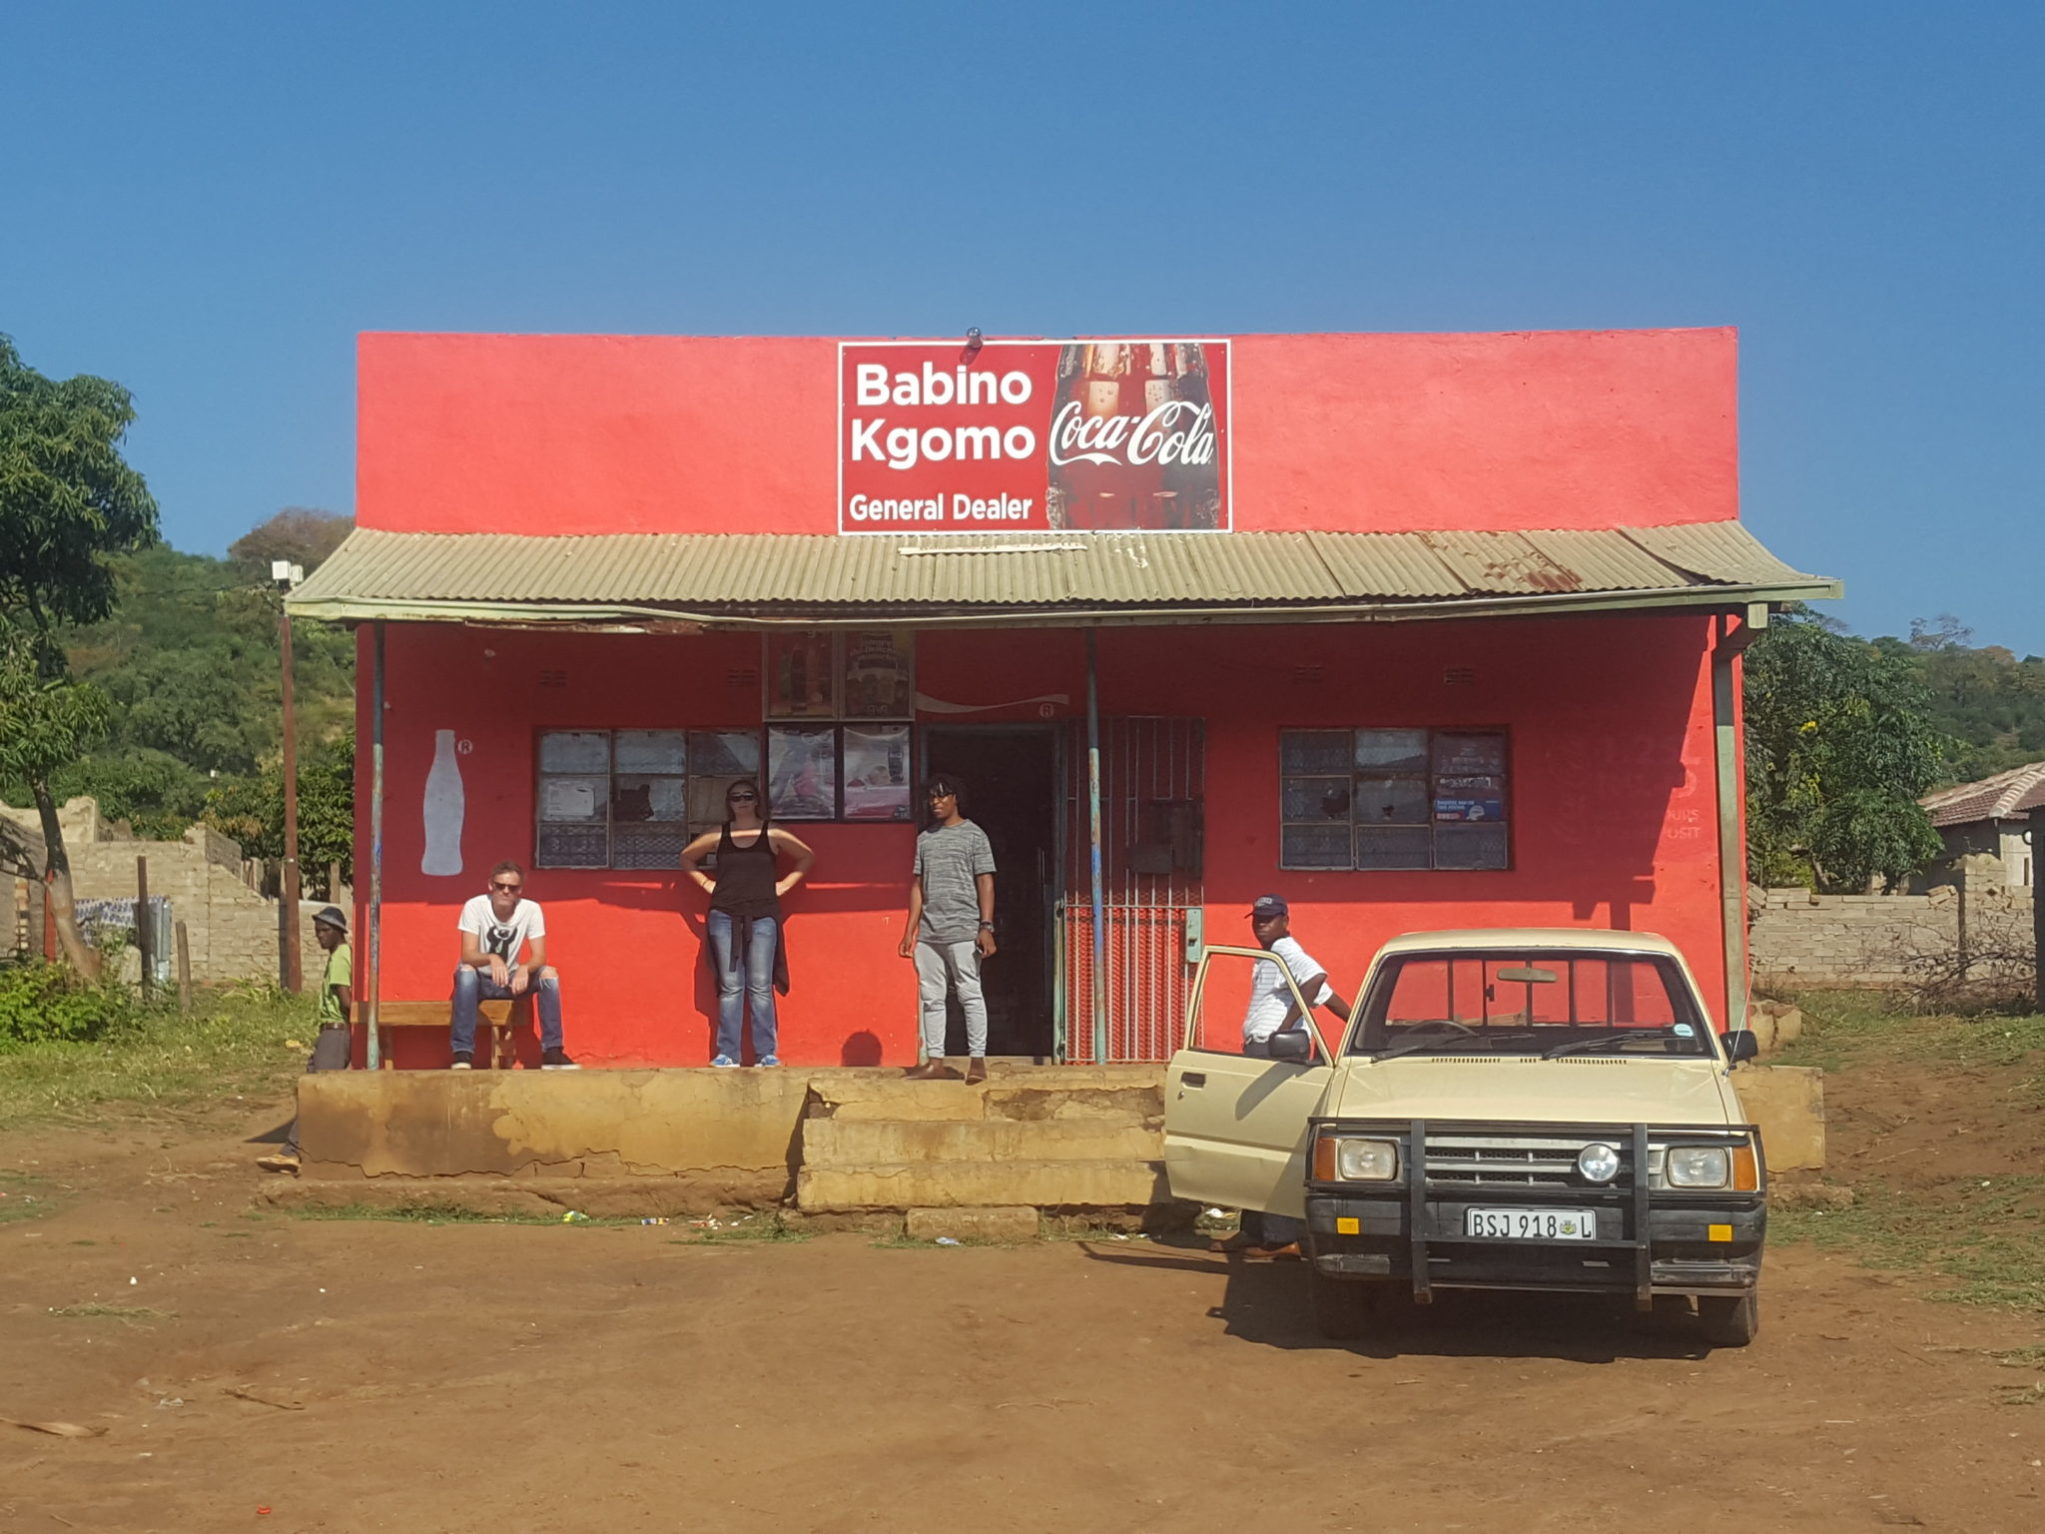 The decline of local informal retailers in South Africa